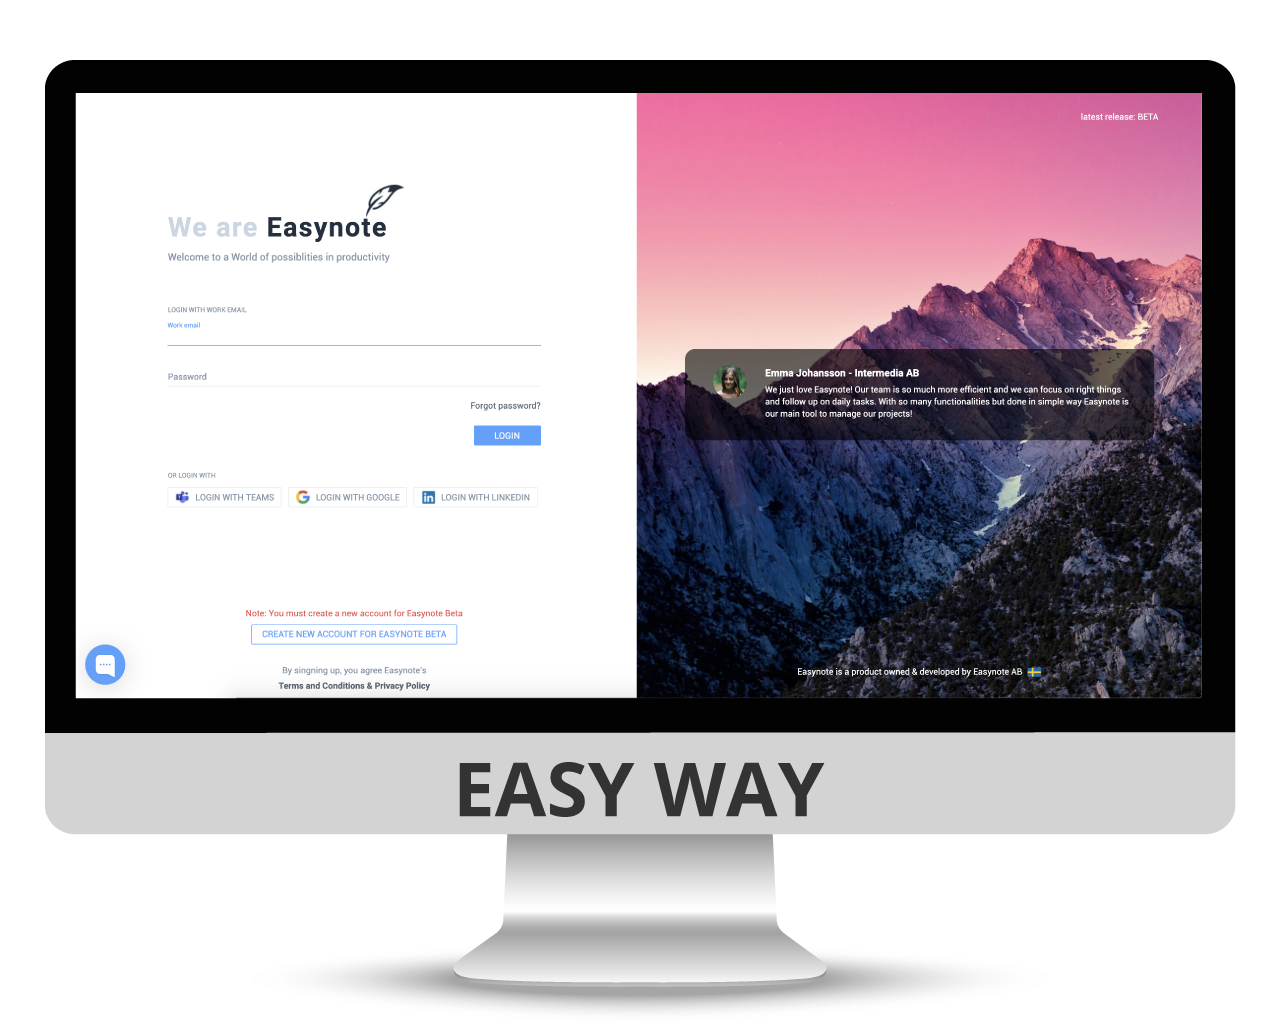 manage easynote